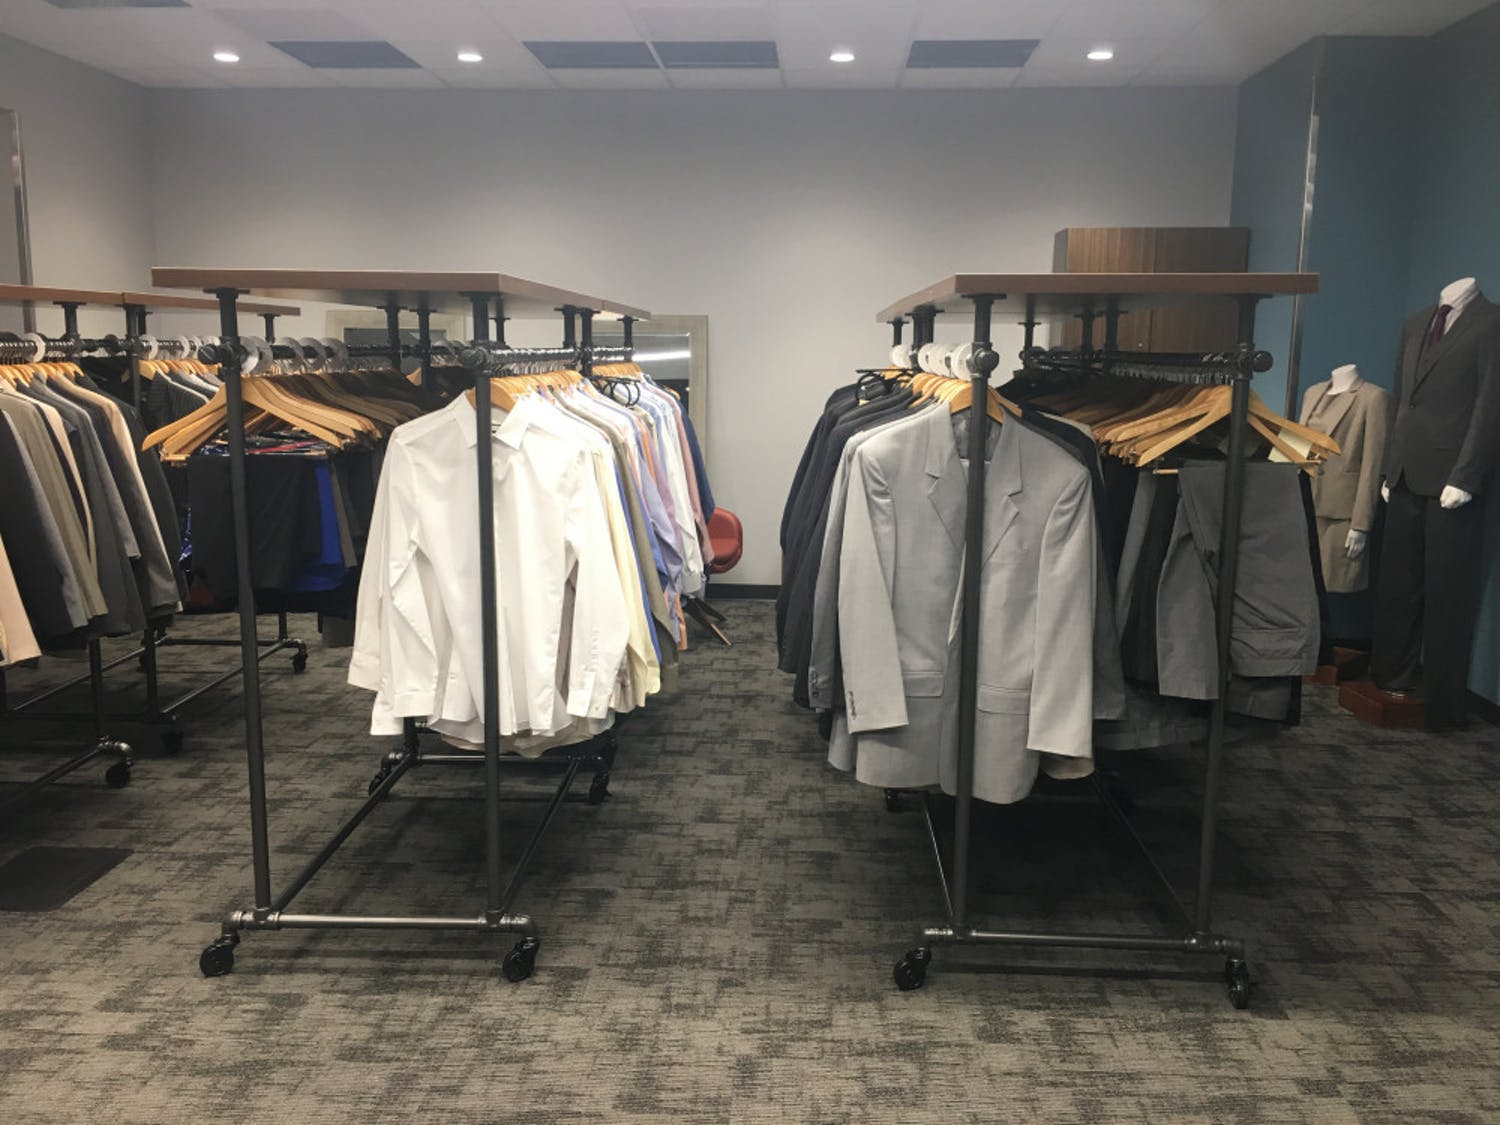 Career Connections Center staff are renovating the new space for the Gator Career Closet. The new space will have a larger selection of business attire for students.